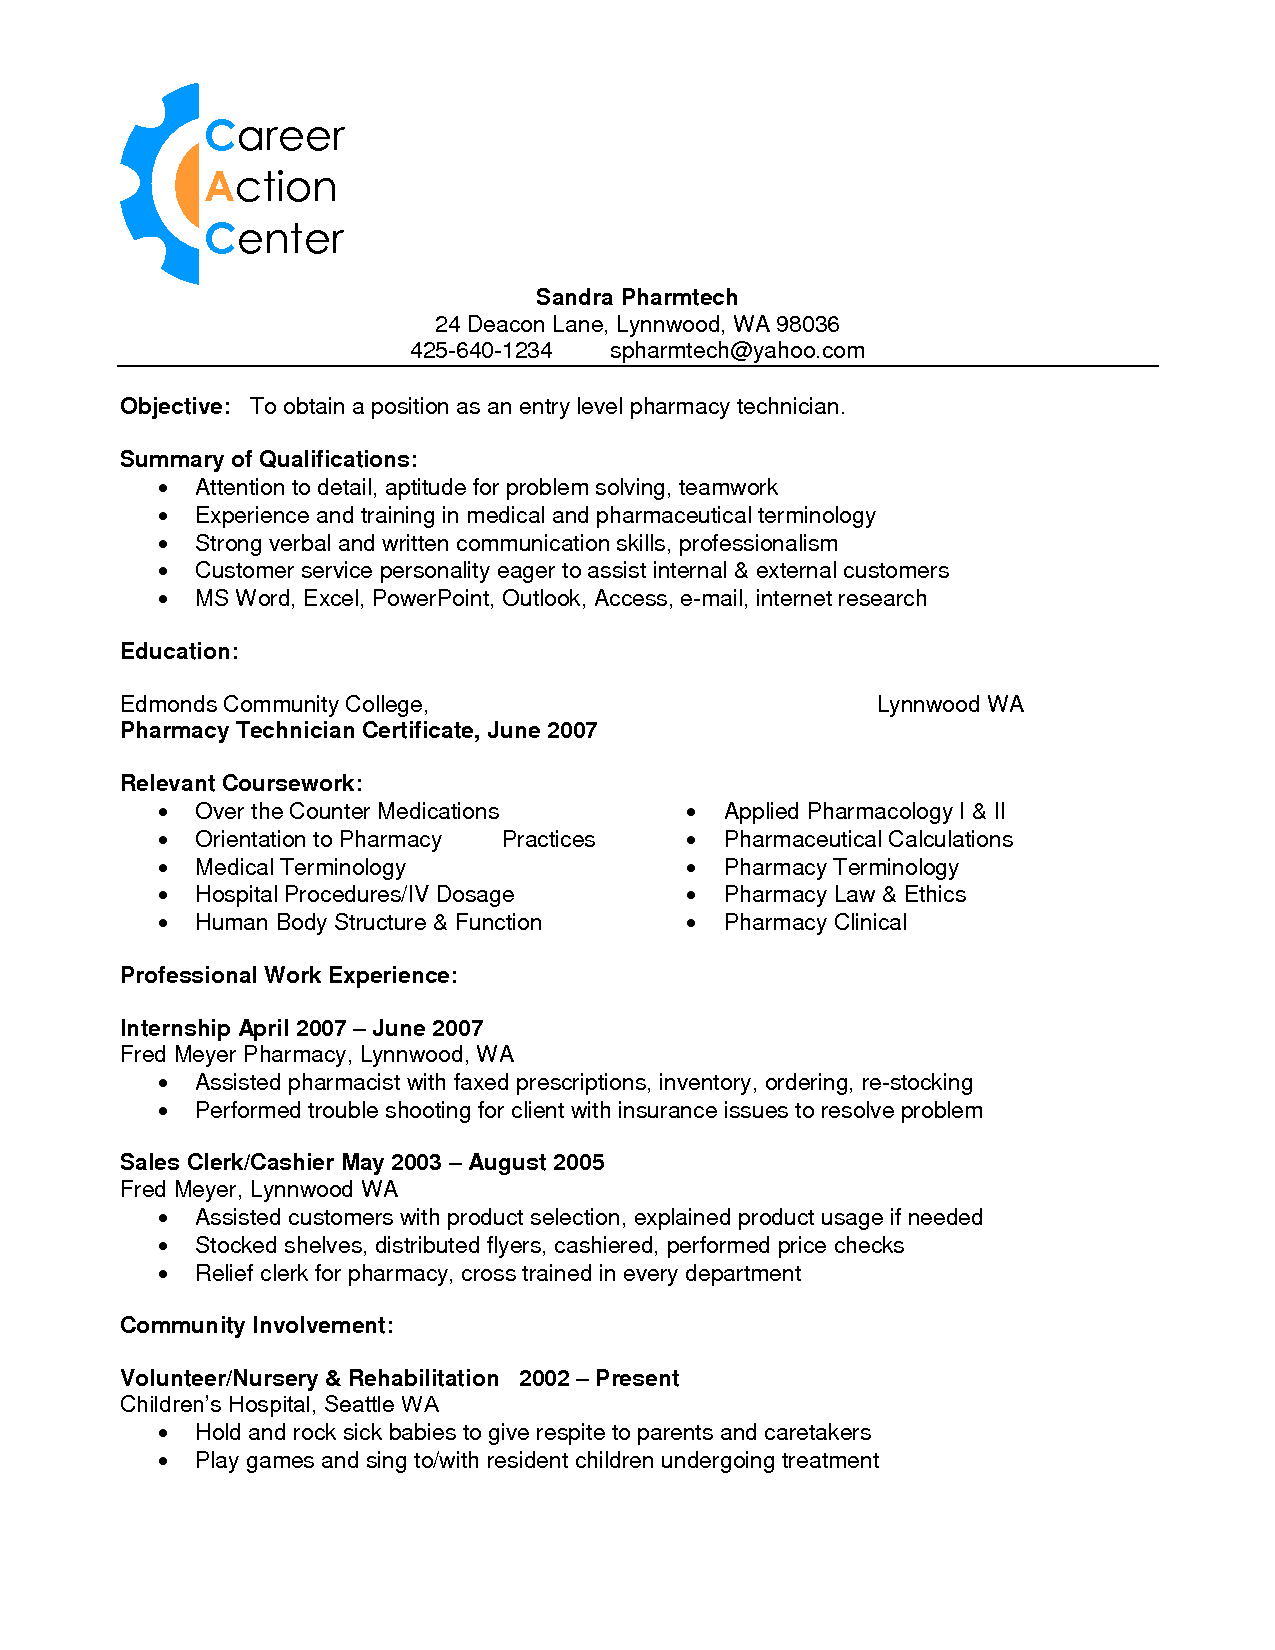 Sample Resume For Bank Teller At Entry Level  HttpWww